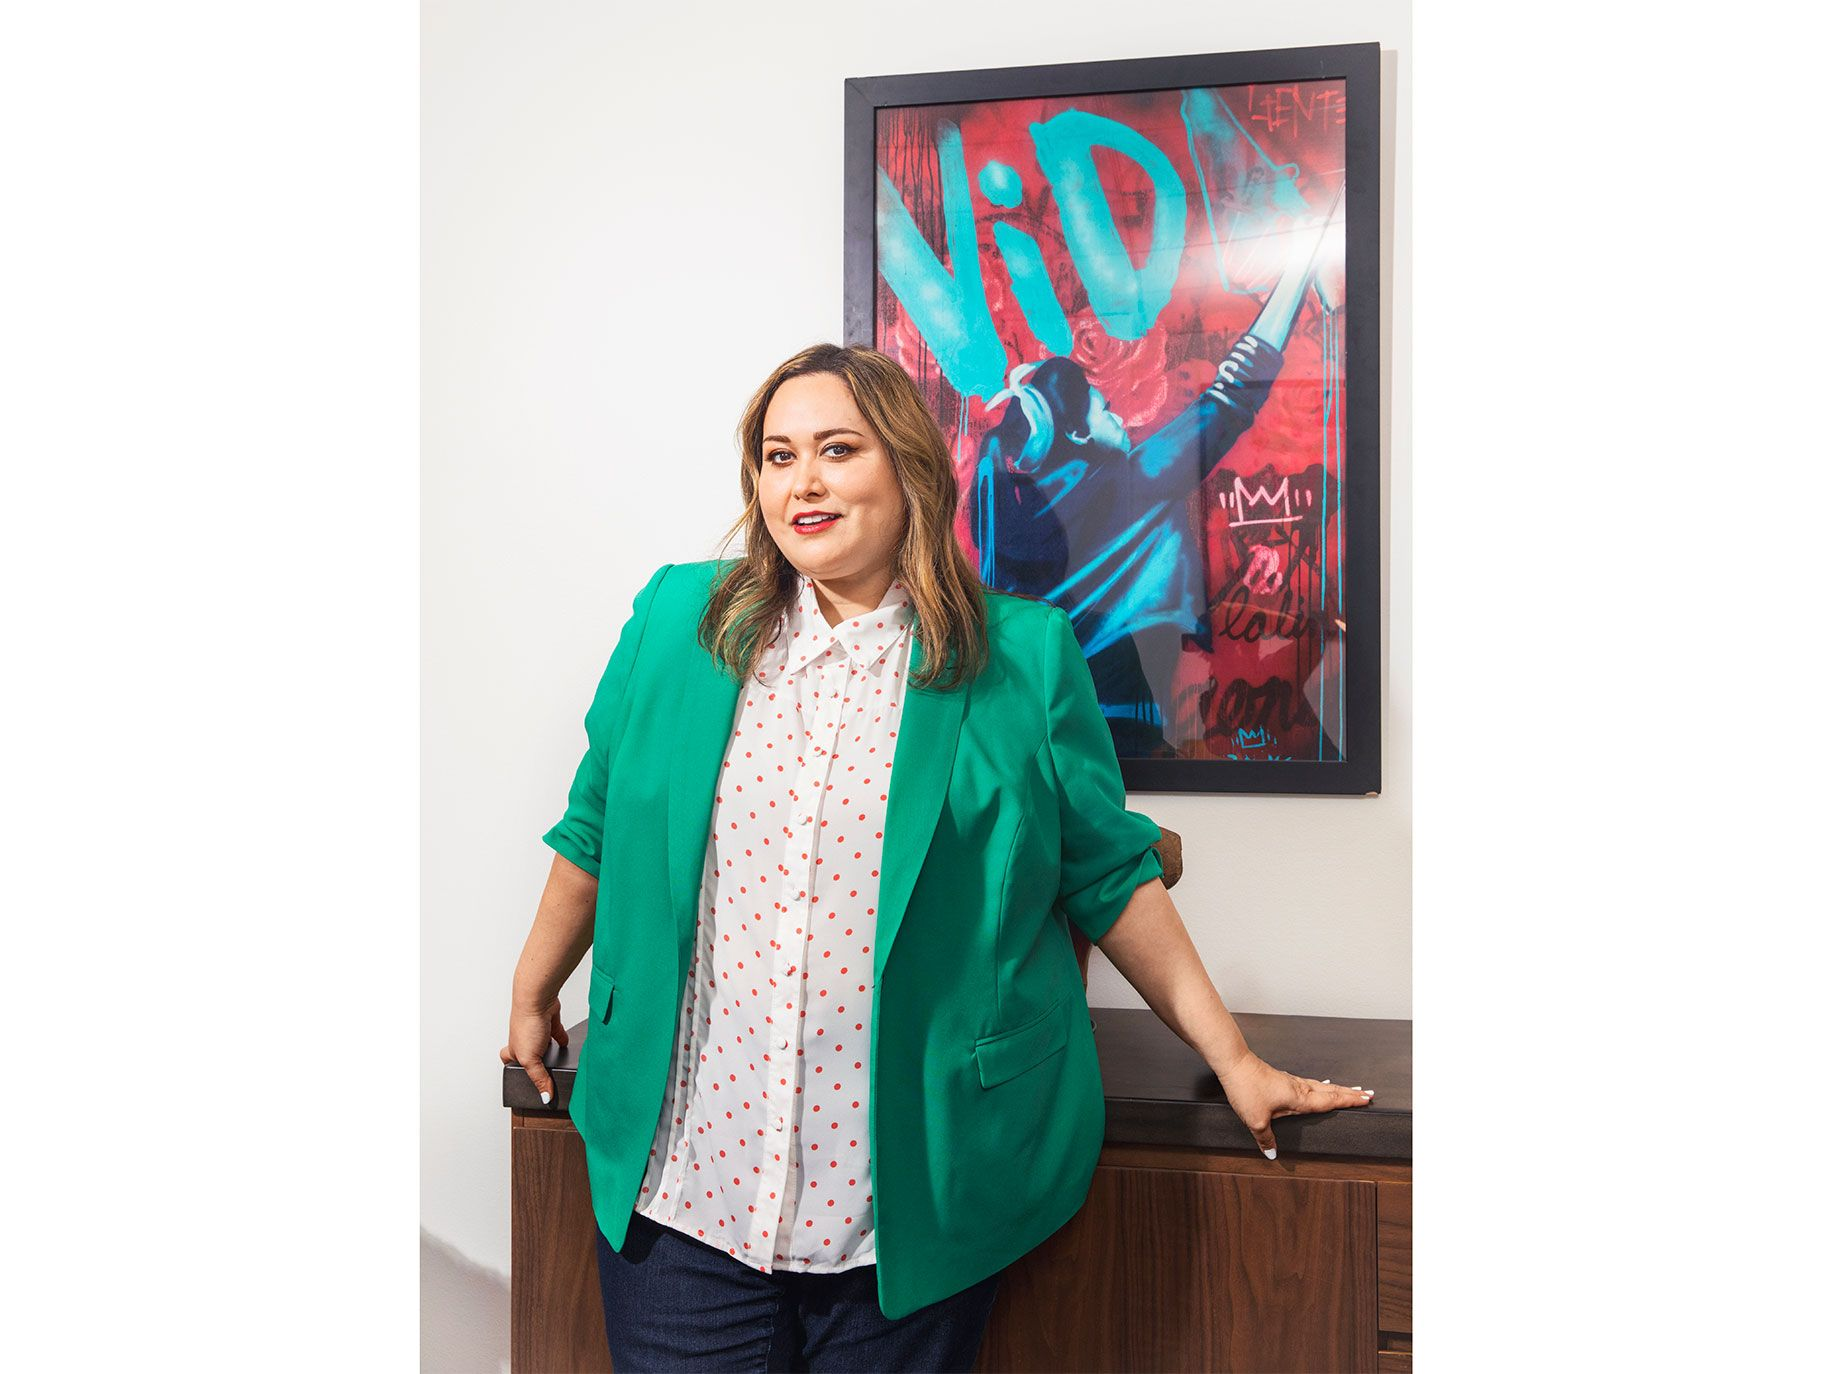 In television, Tanya Saracho started writing for hits like How to Get Away with Murder before creating her own series, Vida, on Starz.